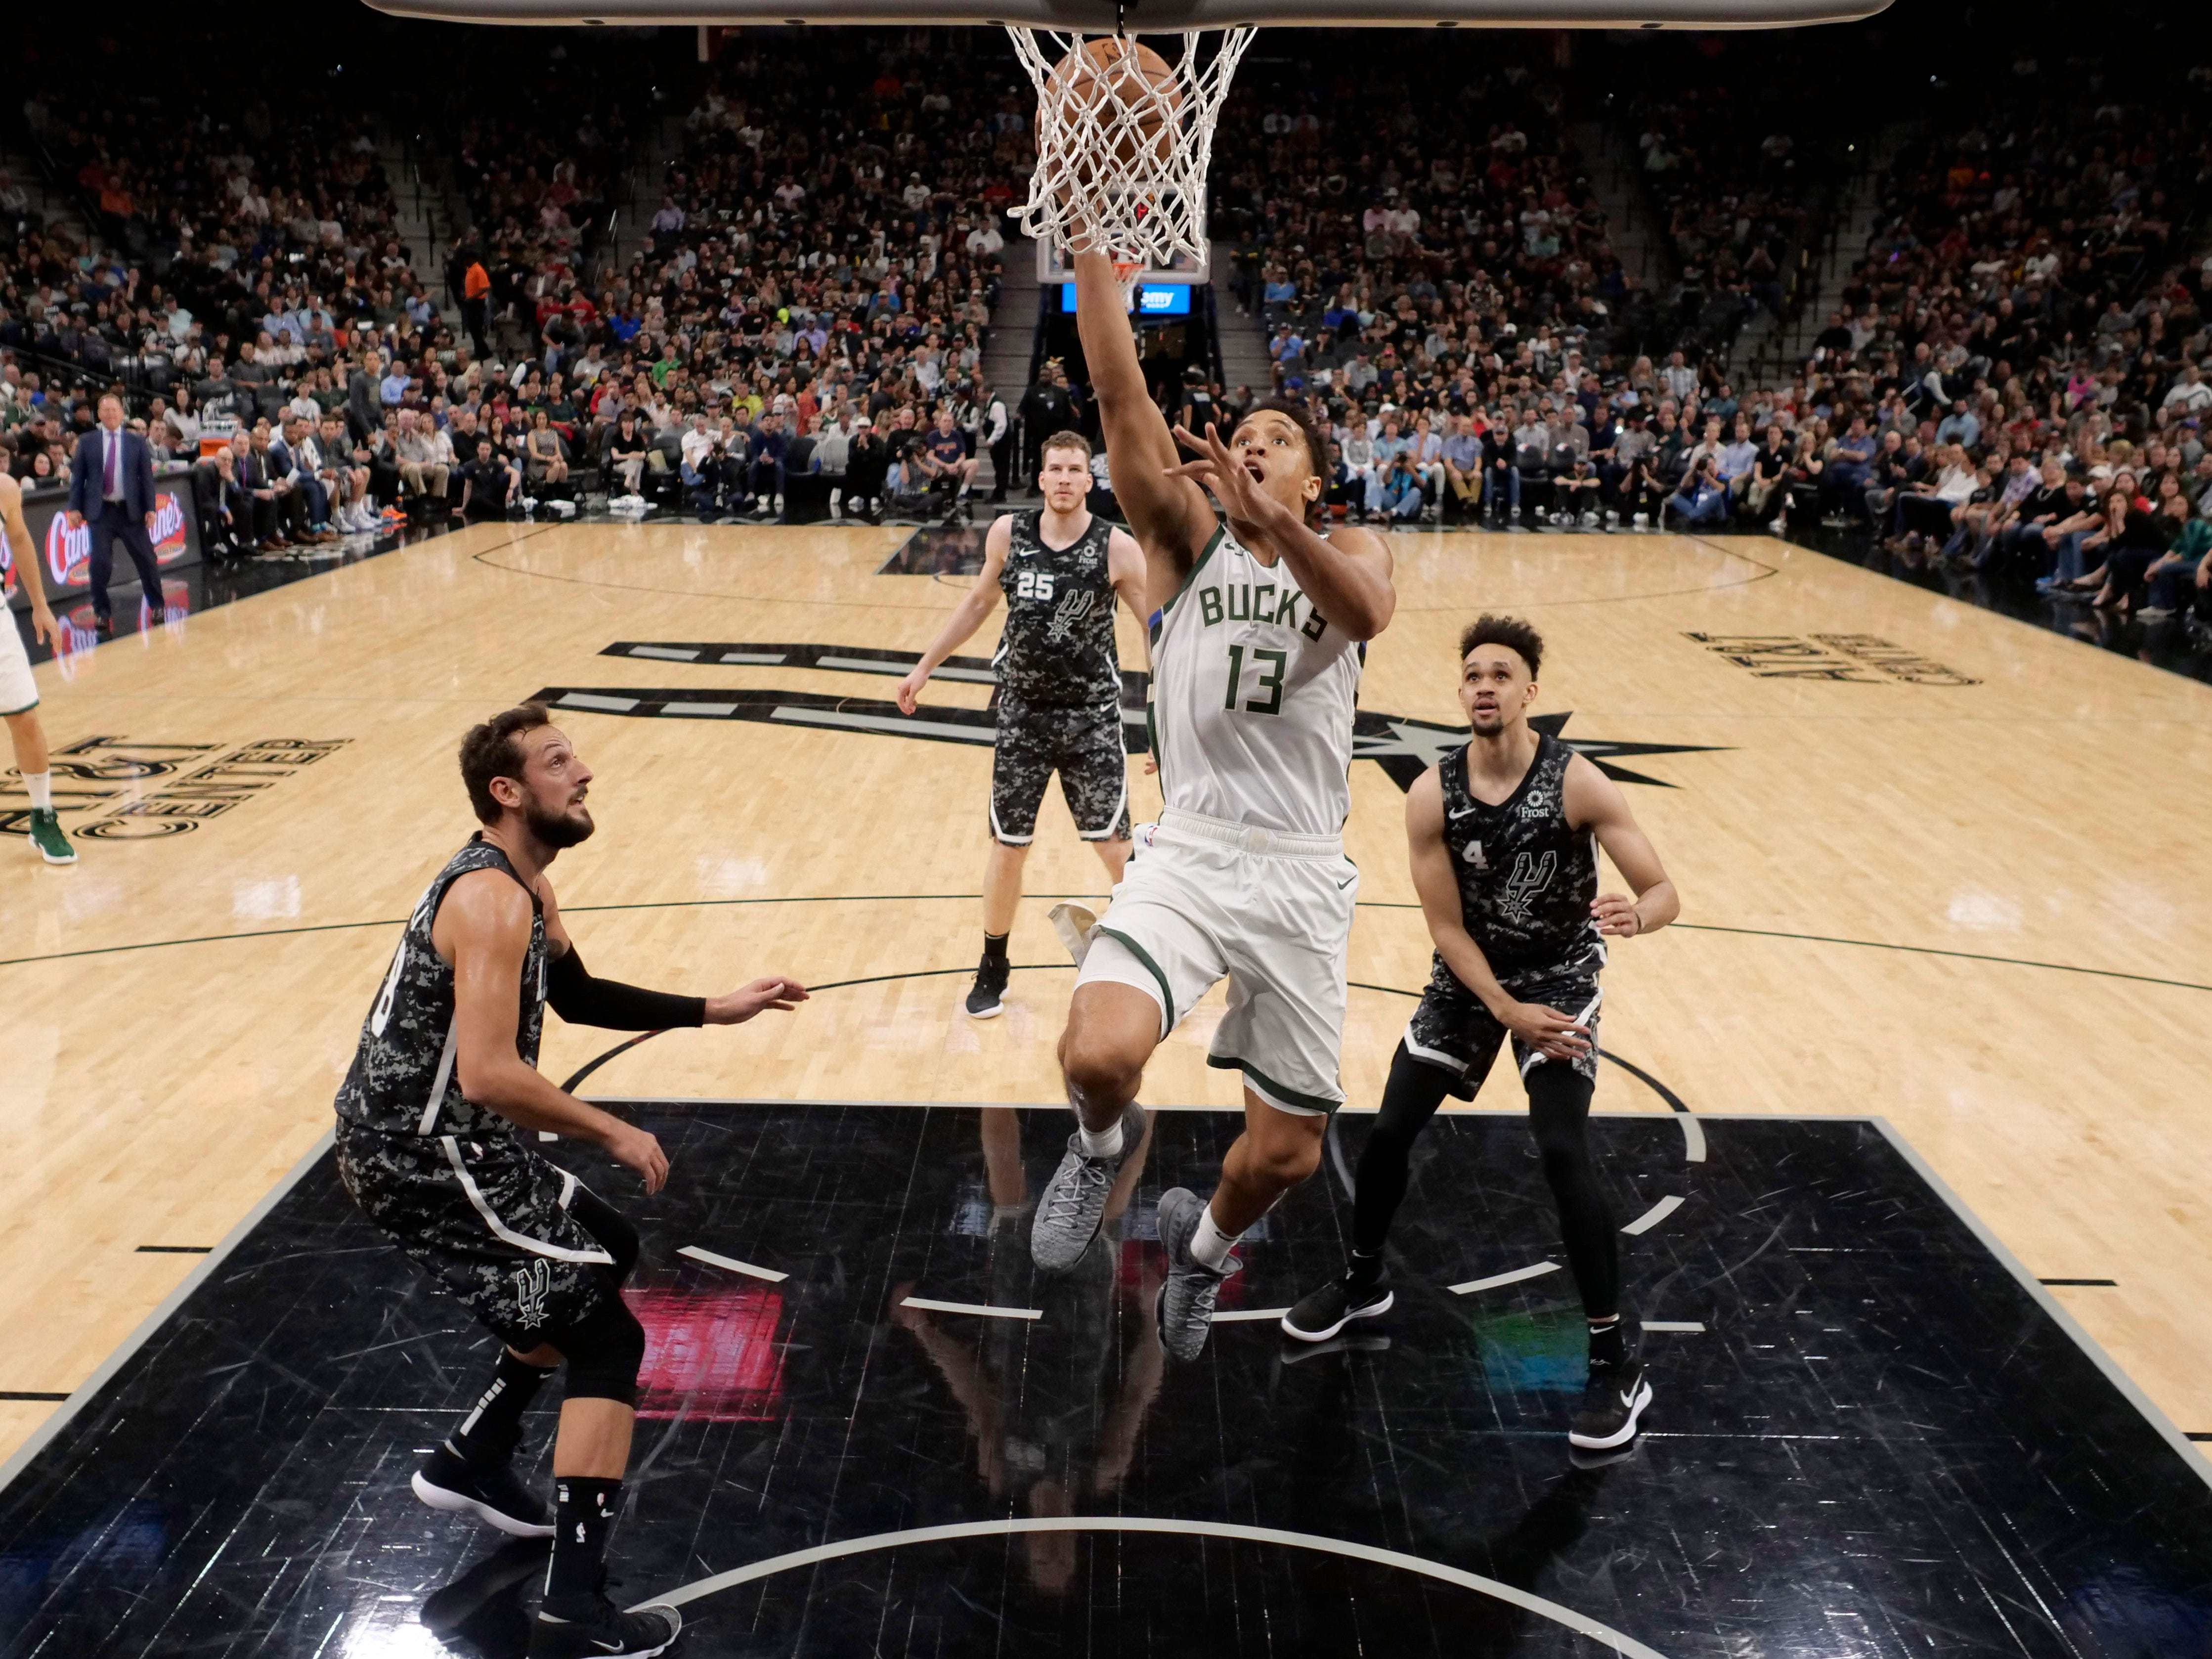 Bucks guard Malcolm Brogdon cuts through the Spurs defense for an uncontested layup during the first half Sunday.